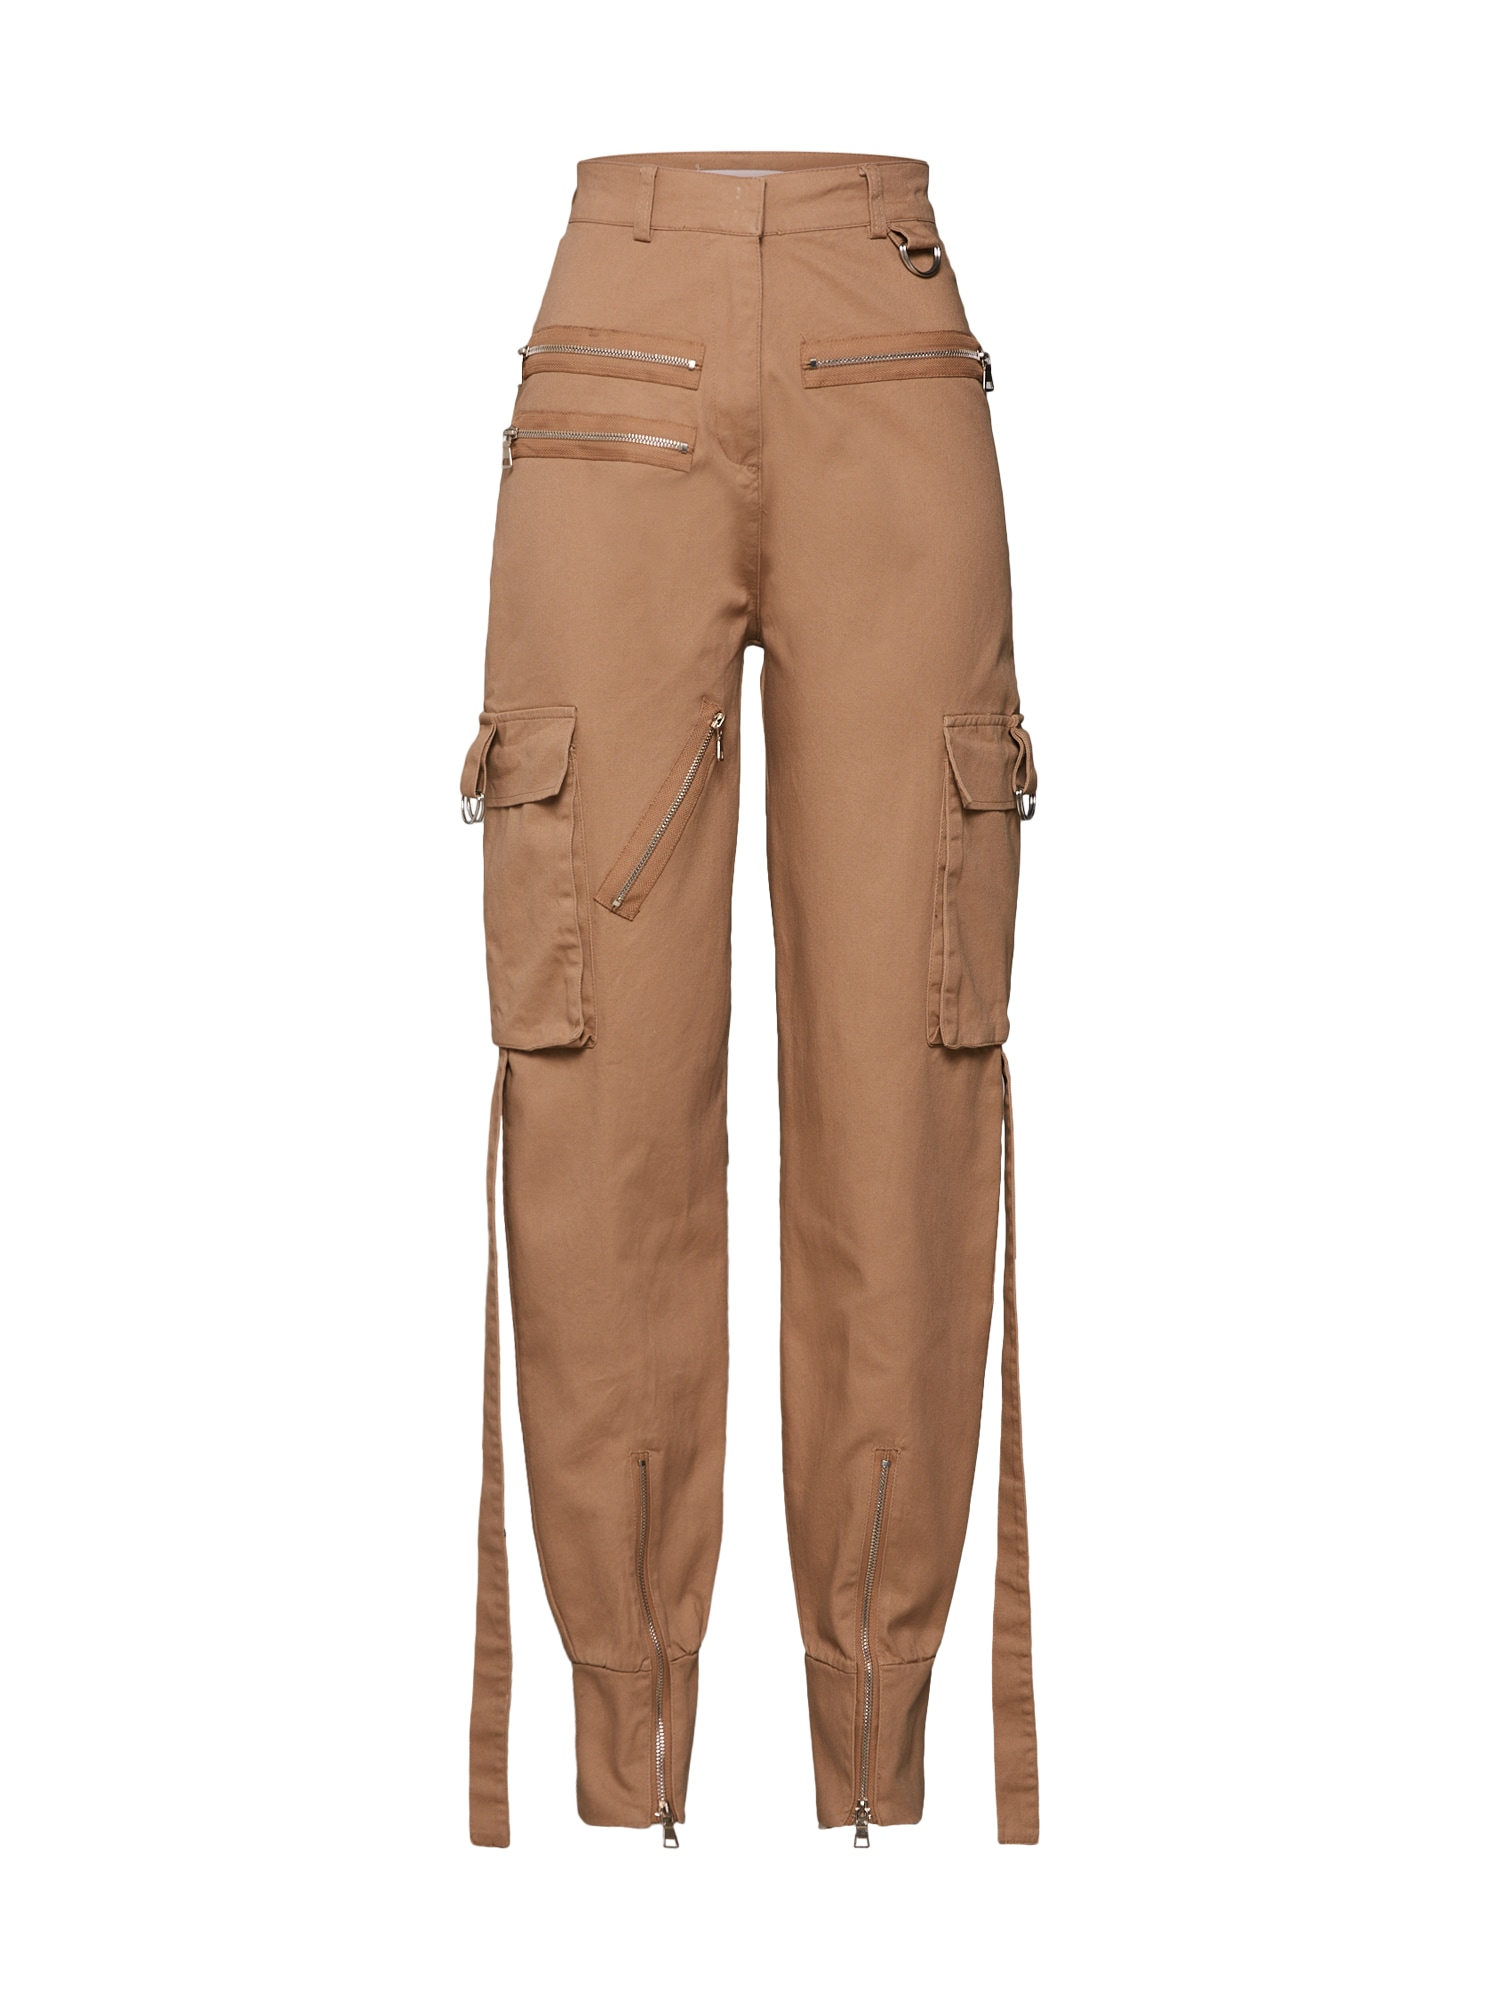 missguided - Hose ´FANNY LYCKMAN CARGO ZIP UTILITY TROUSERS´